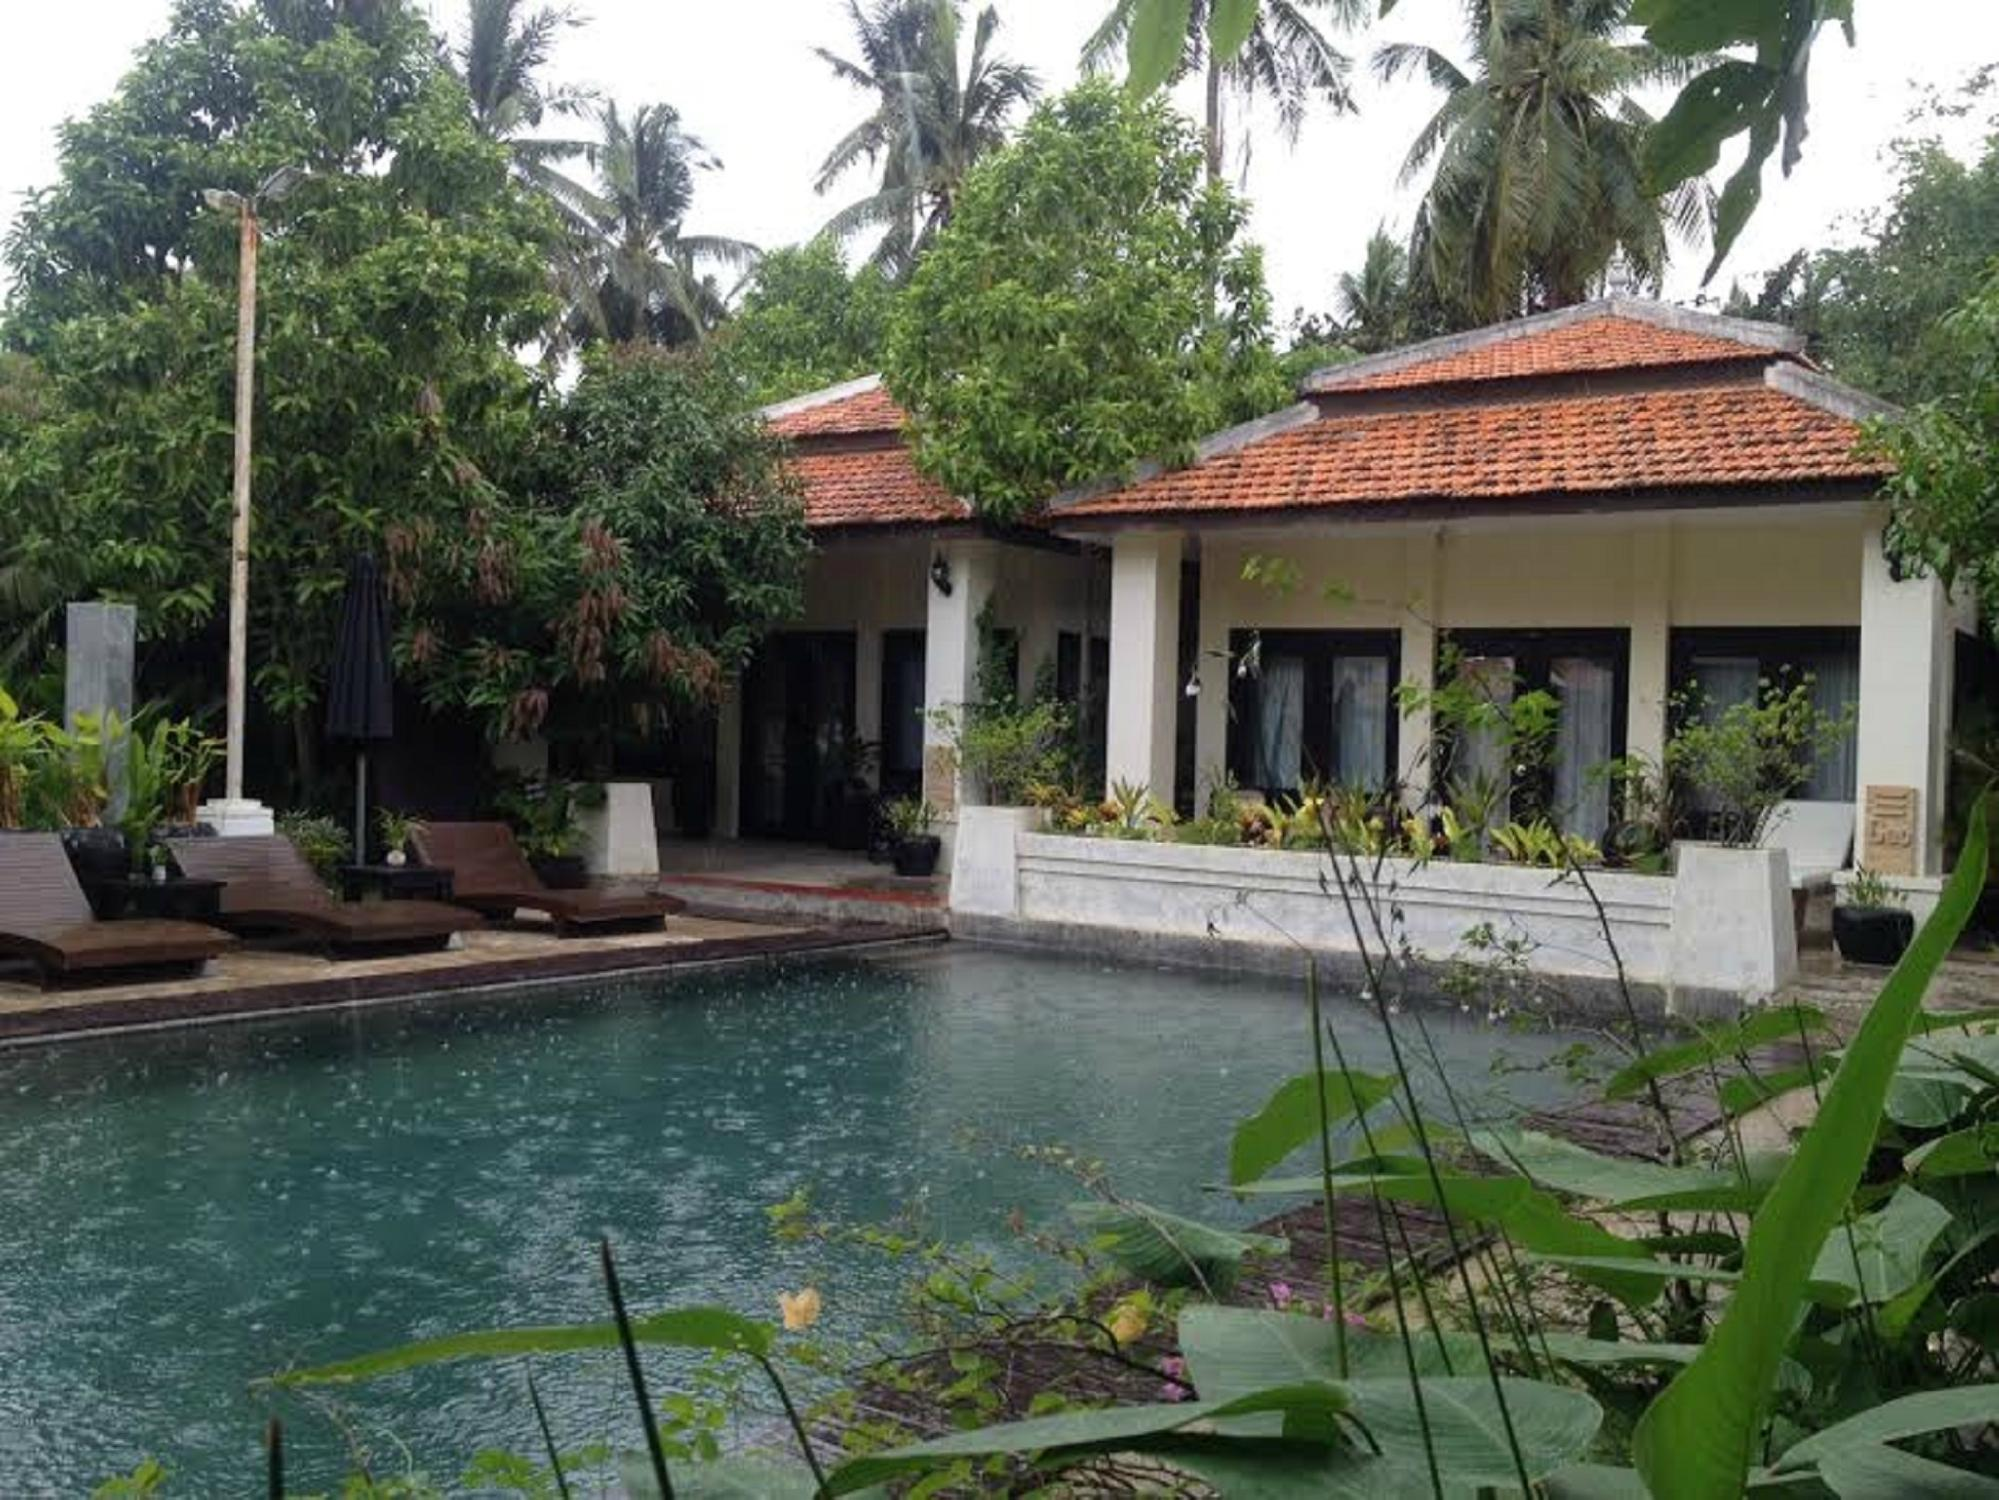 The Sanctuary Villa